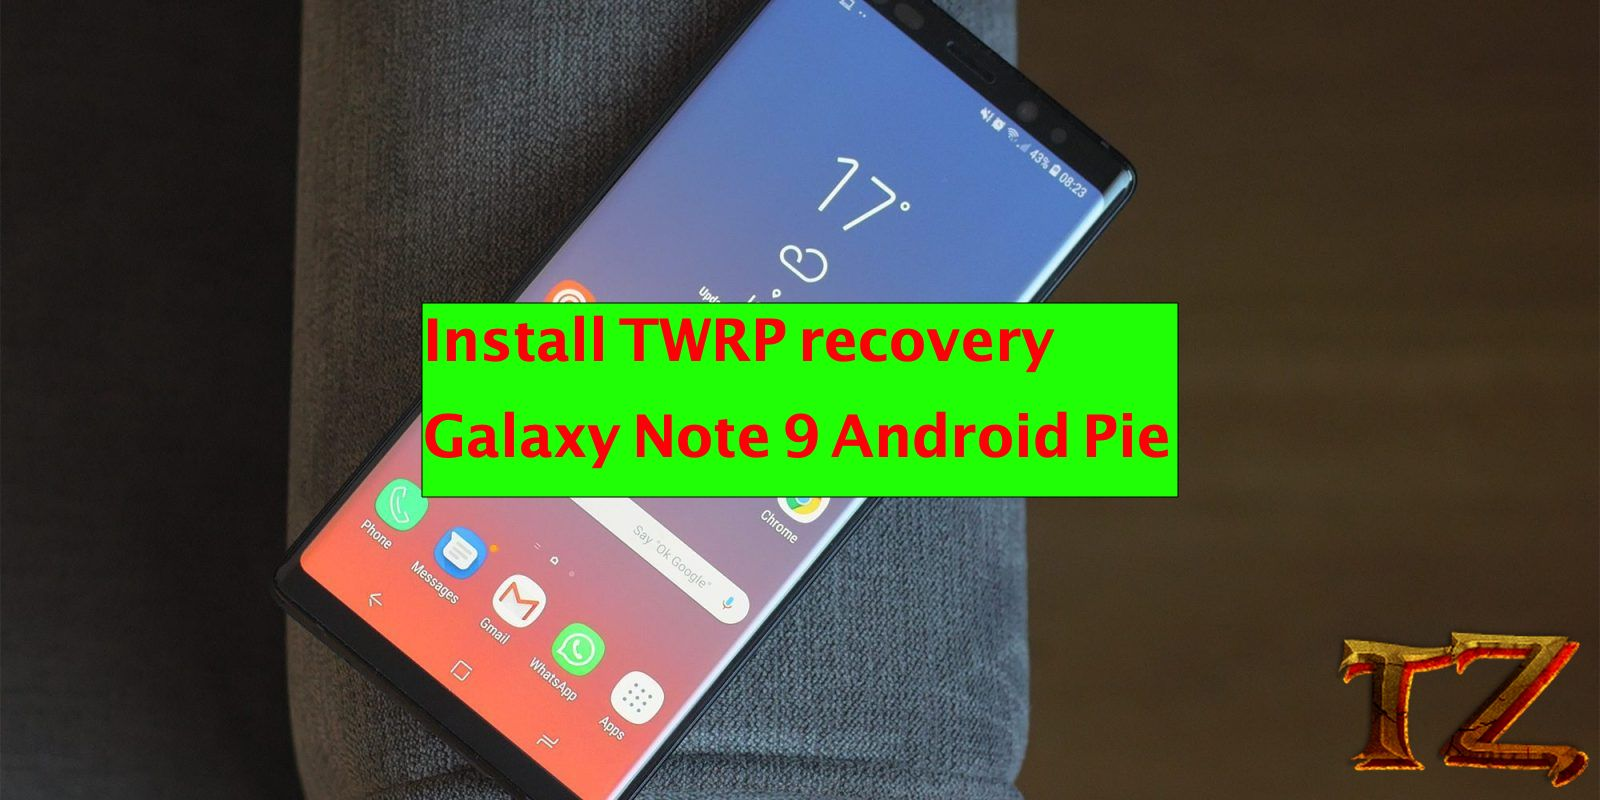 How To Install TWRP Recovery For Galaxy Note 9 On Android Pie